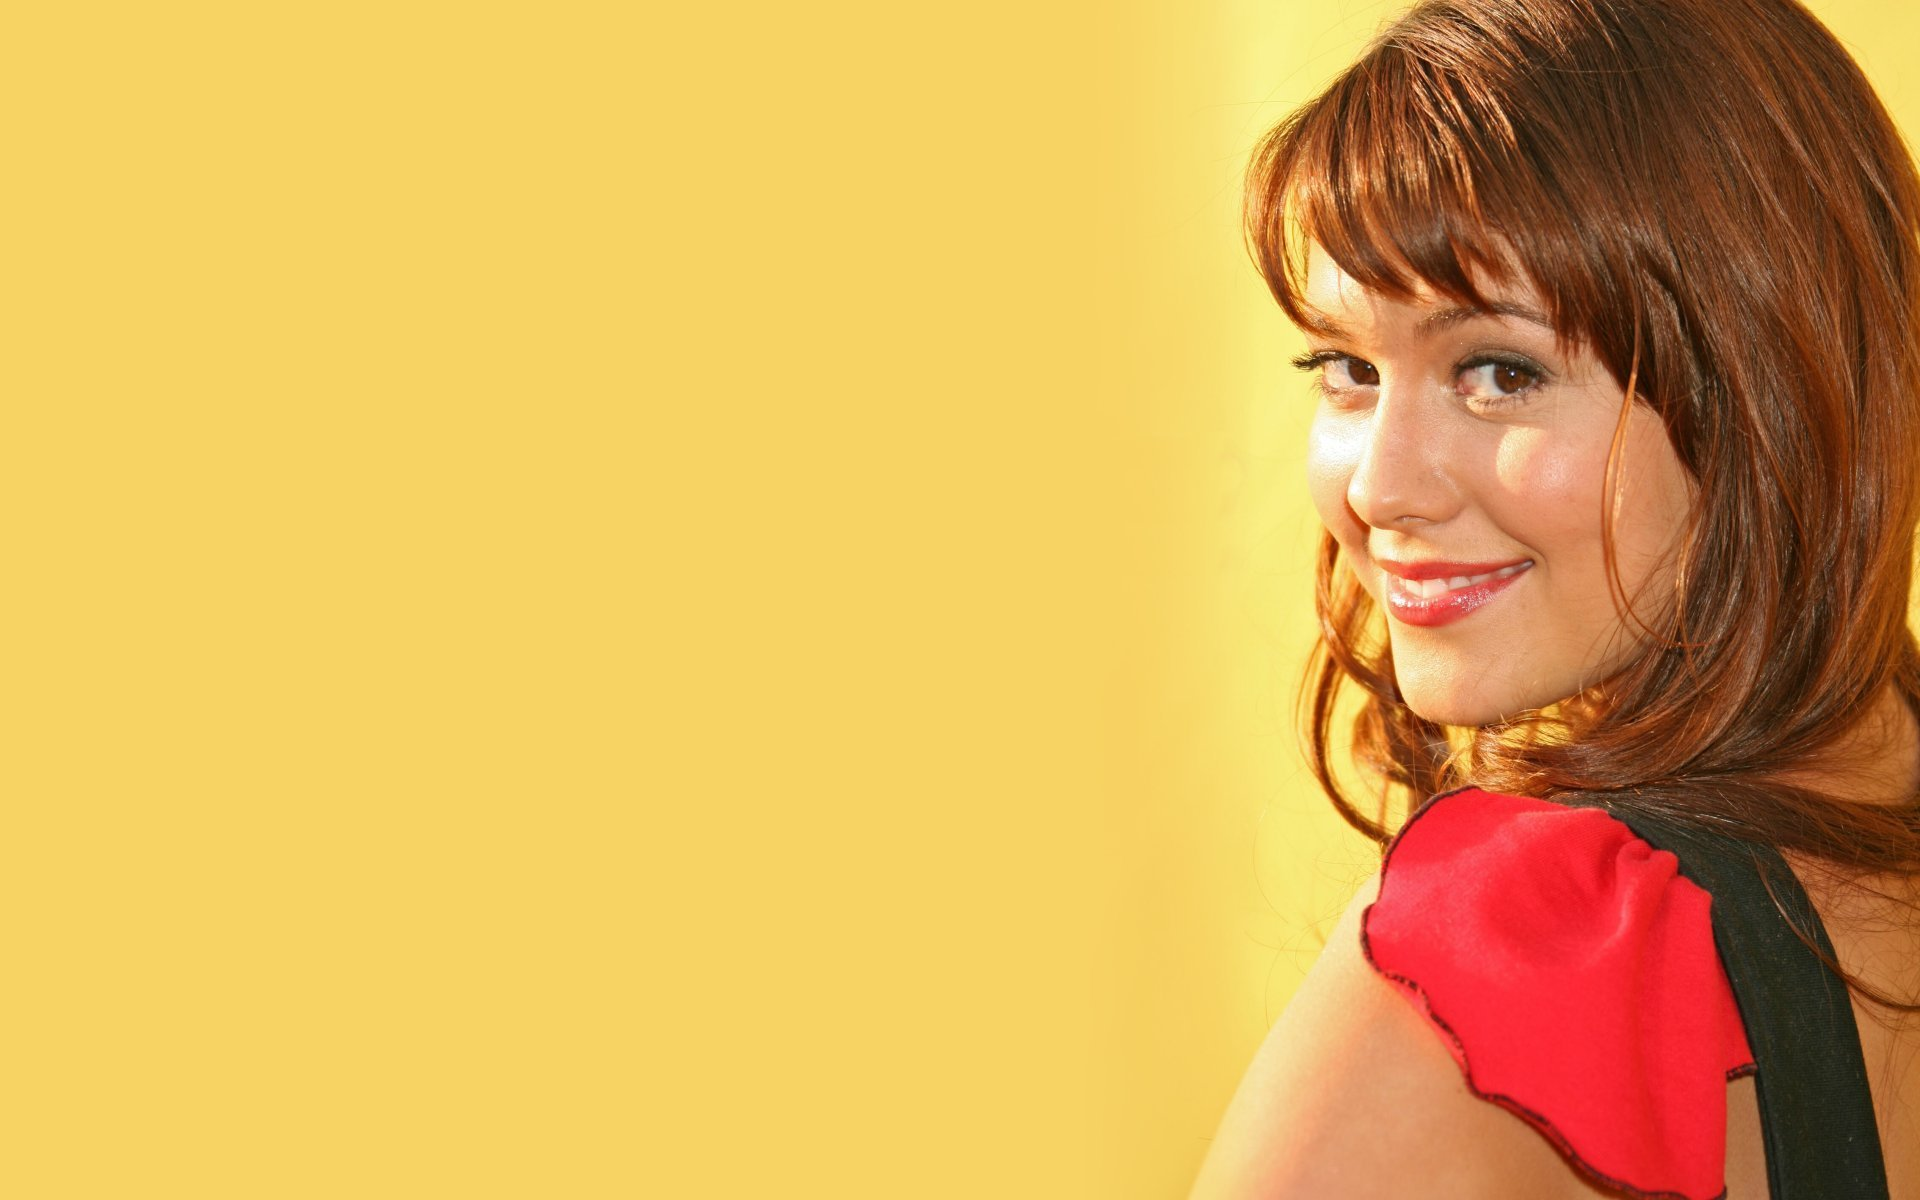 mary elizabeth winstead desktop wallpaper 53209 1920x1200px